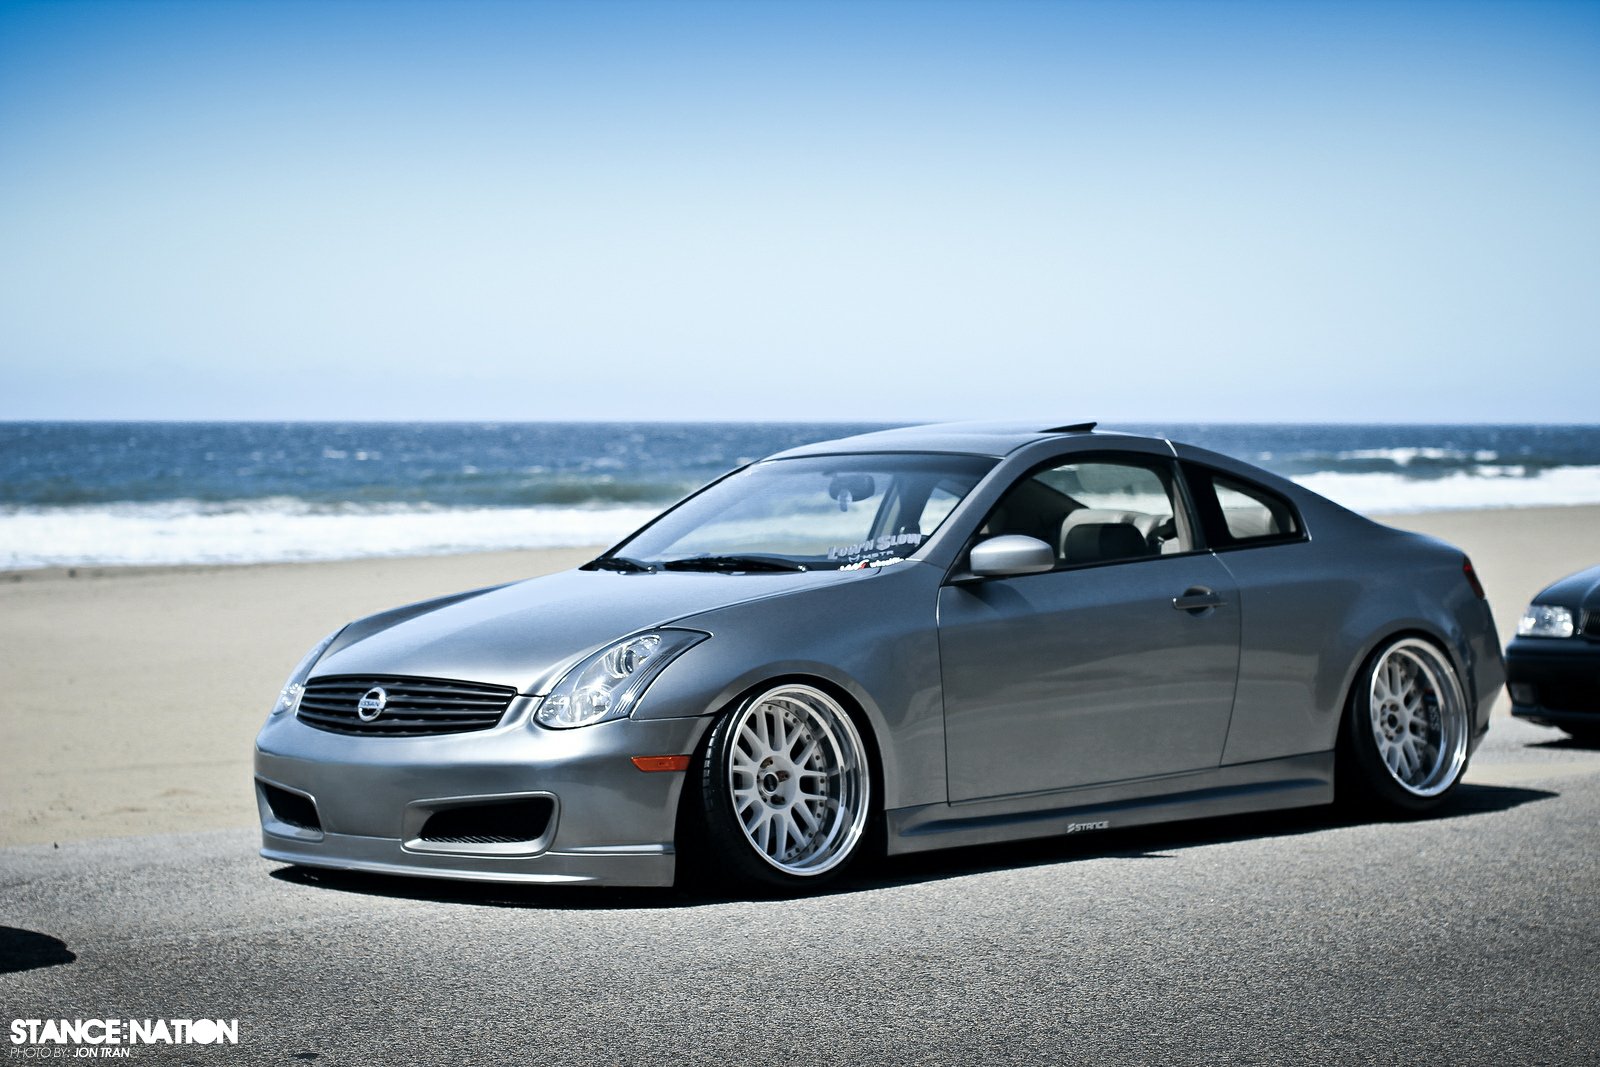 All dg diamond graphite coupes post pics page 1416 g35driver all dg diamond graphite coupes post pics page 1416 g35driver infiniti g35 g37 forum discussion vanachro Gallery